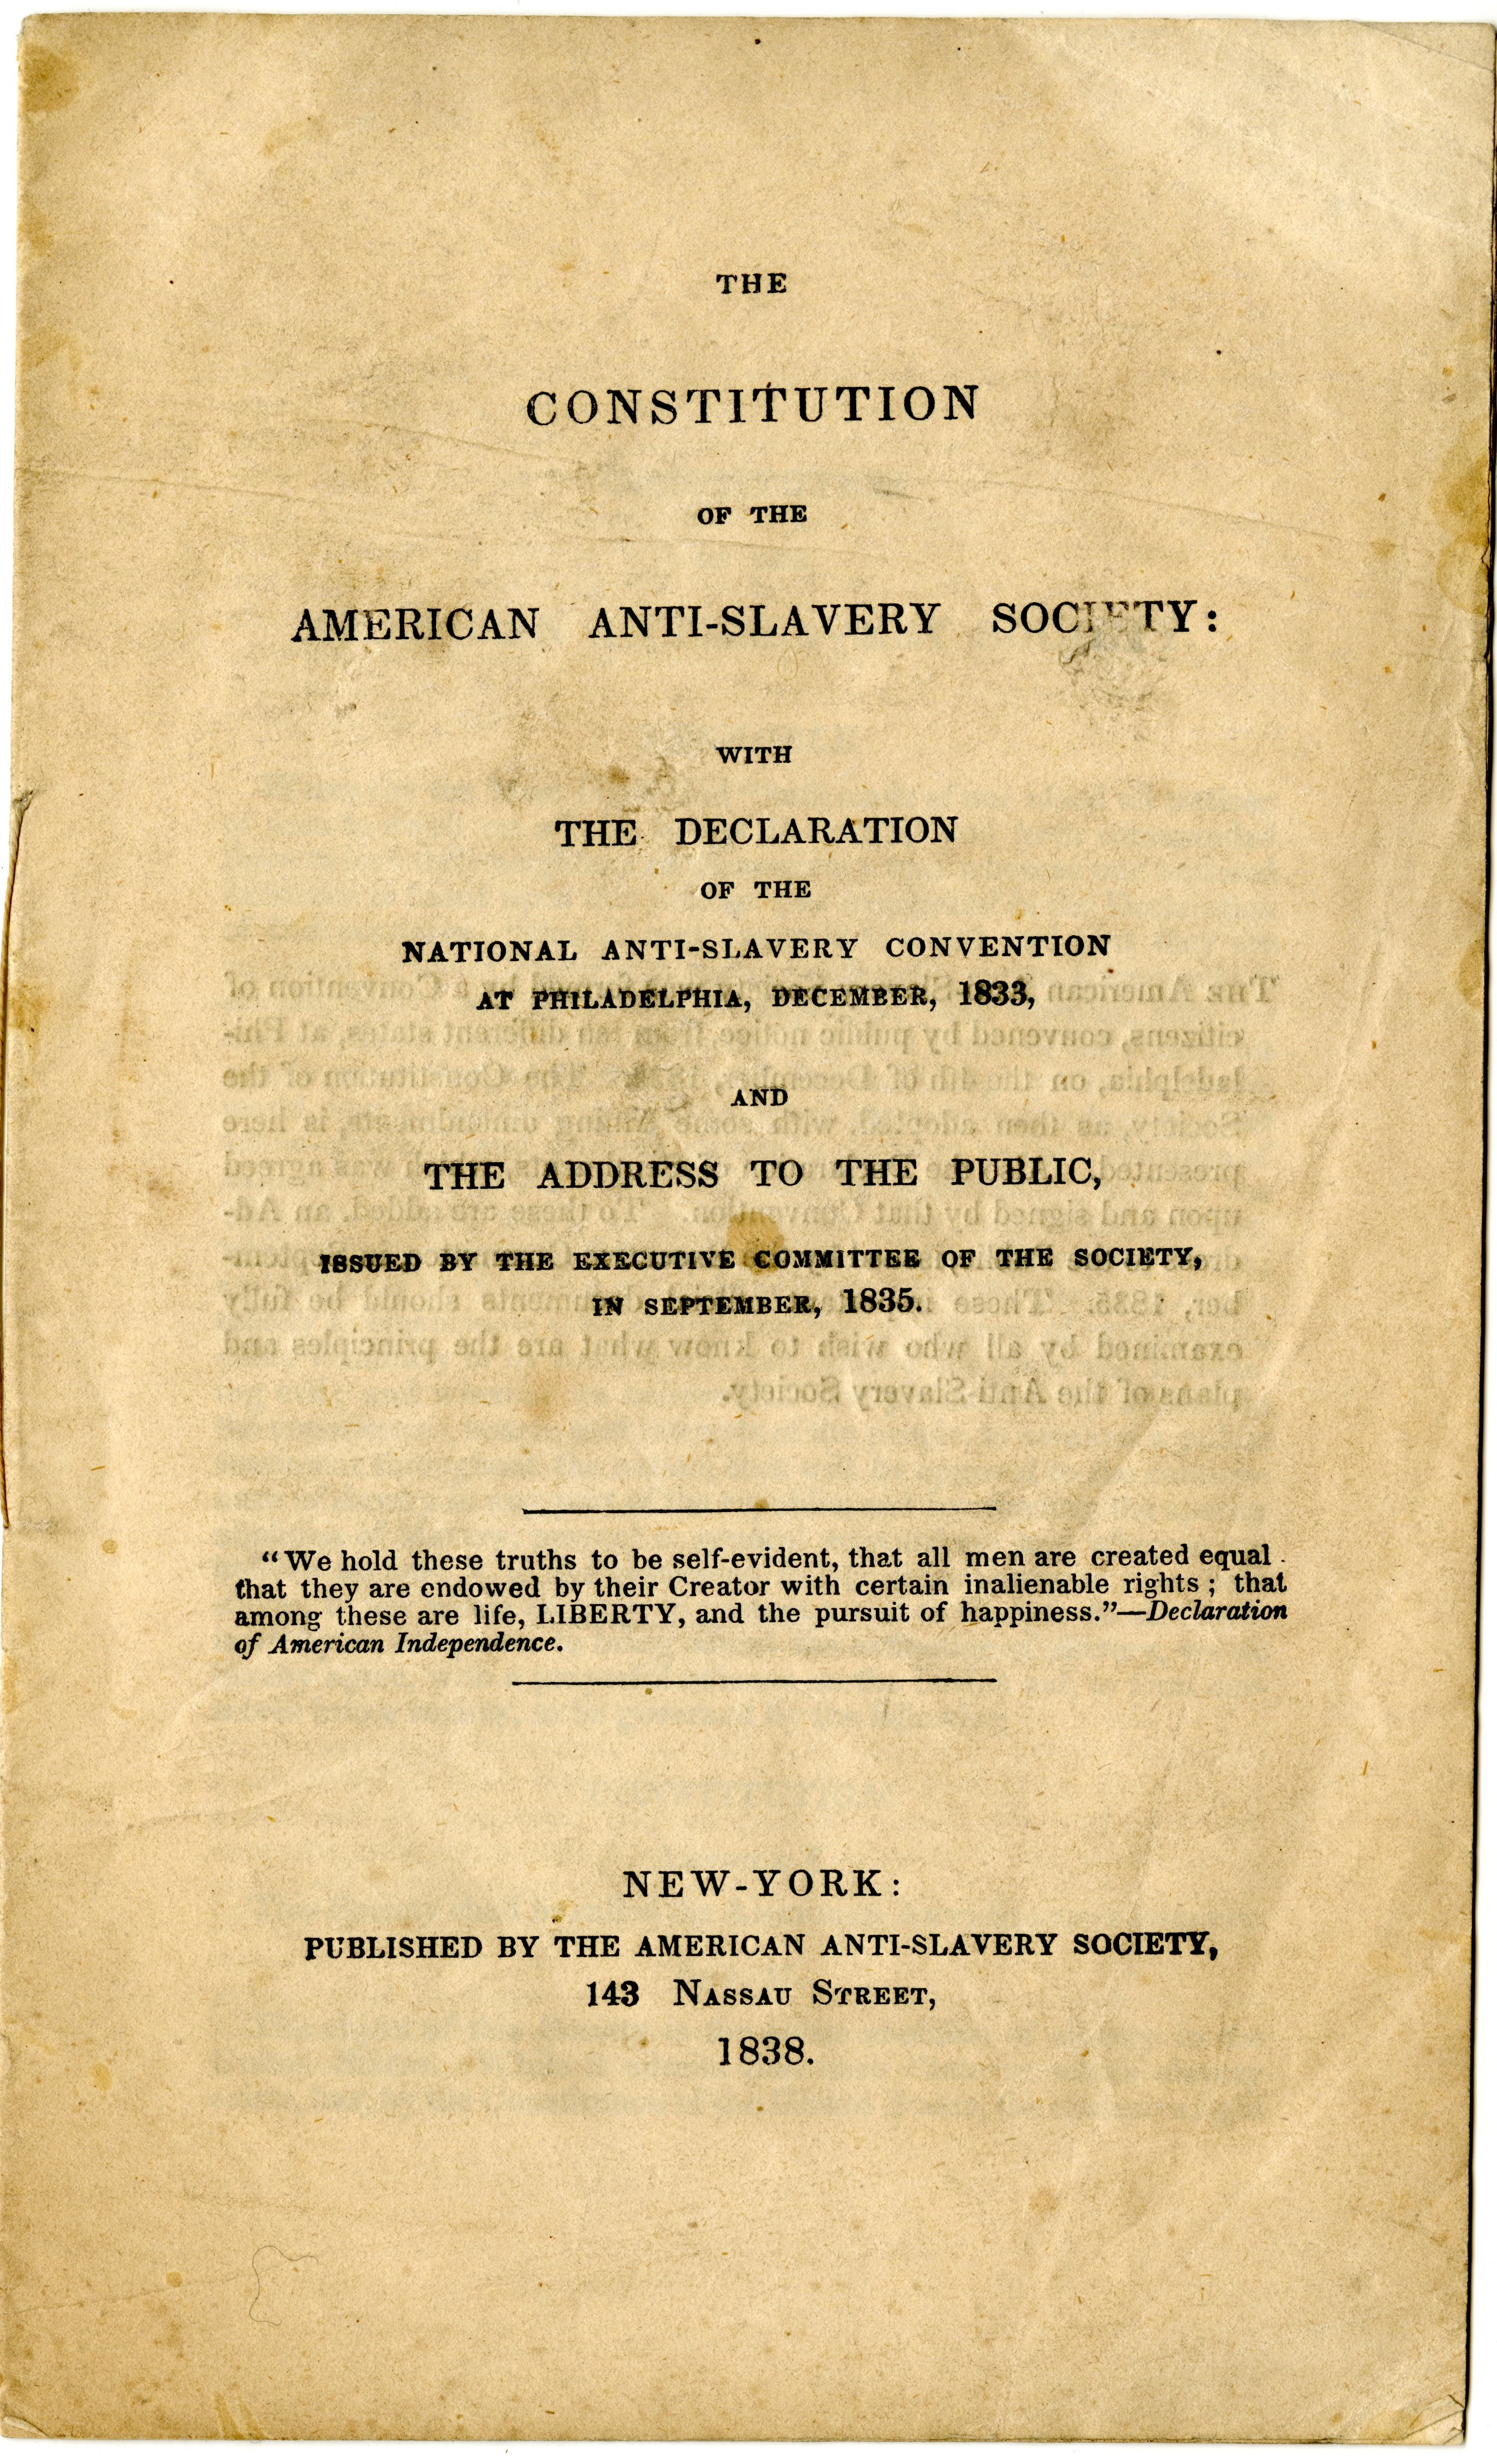 slavery in the constitution and declaration In 1780, when the massachusetts constitution went into effect, slavery was legal   the constitution of 1780, in contrast, contained a declaration that all men are .